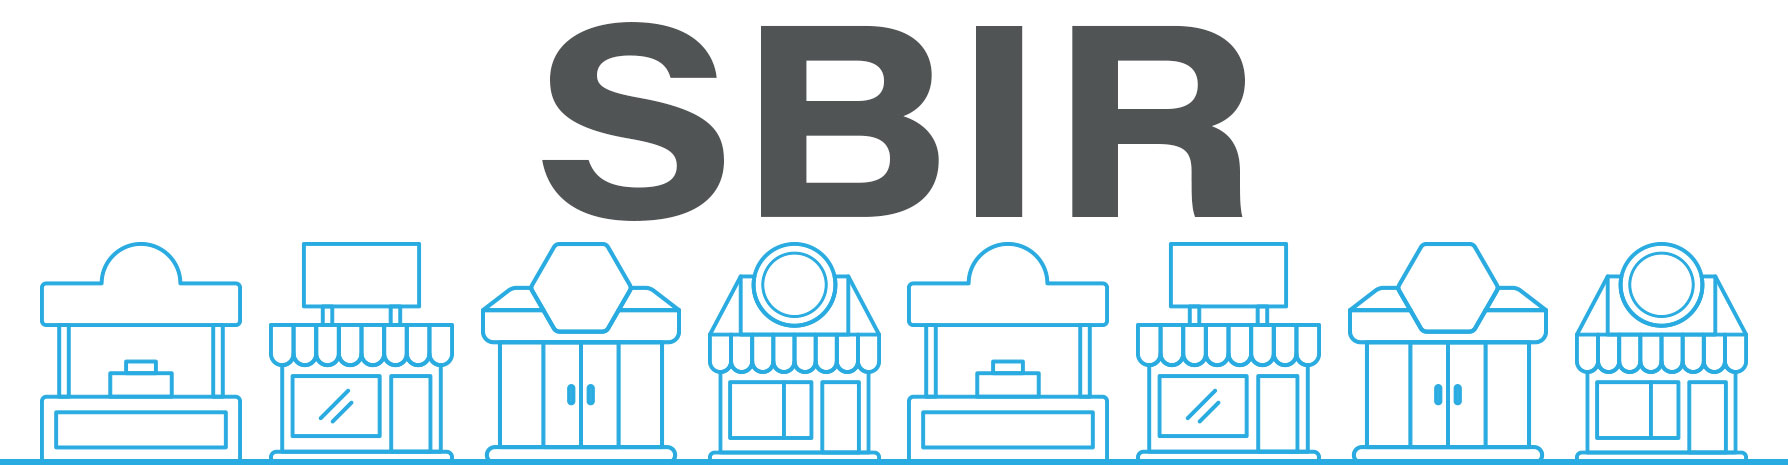 Banner Image showing some small buildings with the text SBIR above it